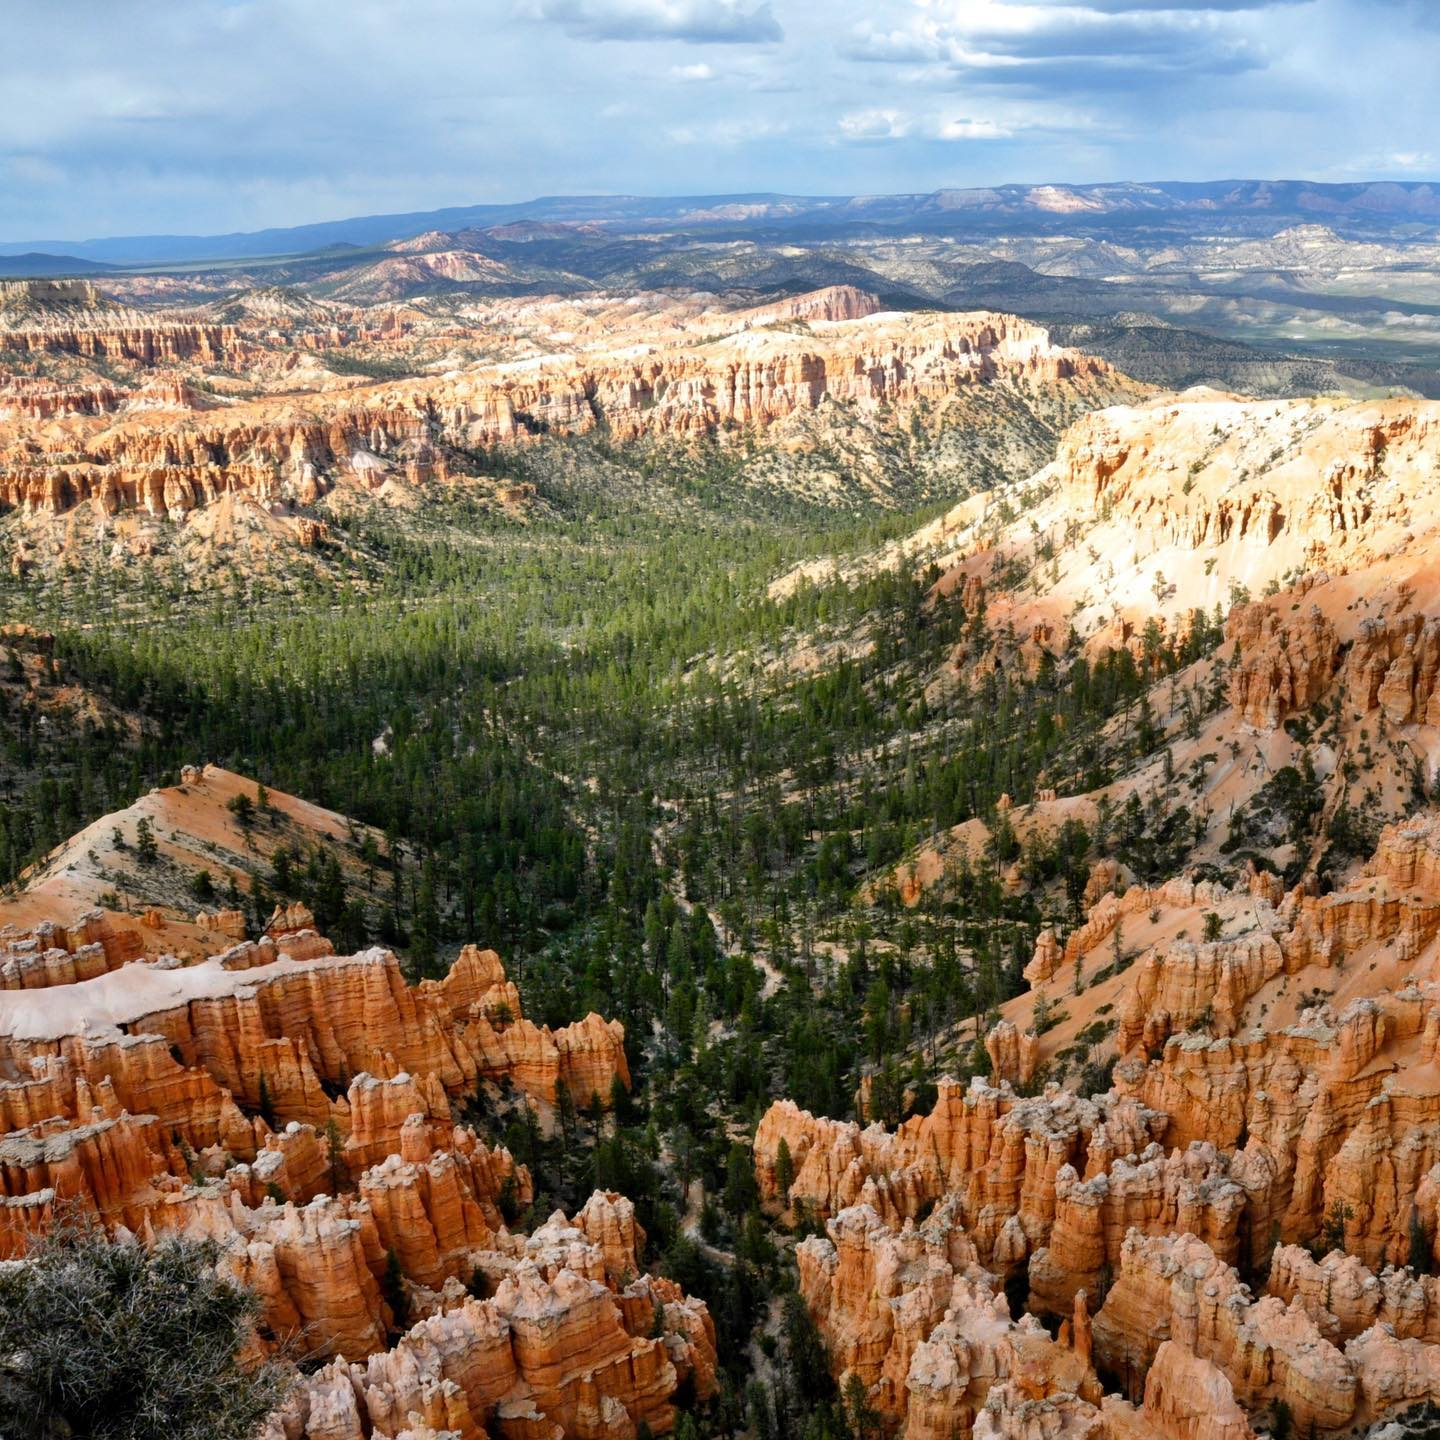 Bryce Canyon NP, Utah If you visit Bryce Canyon NP, do the Navajo Loop Trail.  Awesome hike! Beautiful scenery! Highly recommend! Way down the canyon was easy, the way up not. We did the hike in June and it was really hot. #traveltheusa #traveltheus #travelgram #traveladdict #travelgram #travelblogger #utah #utahgram #utahphotographer #beautifulutah #roadtripusa #brycecanyonnationalpark #brycecanyon #hikingadventures #canyon #naturephotography #navajolooptrail #landscapelovers #scenery #hoodoos #southwest